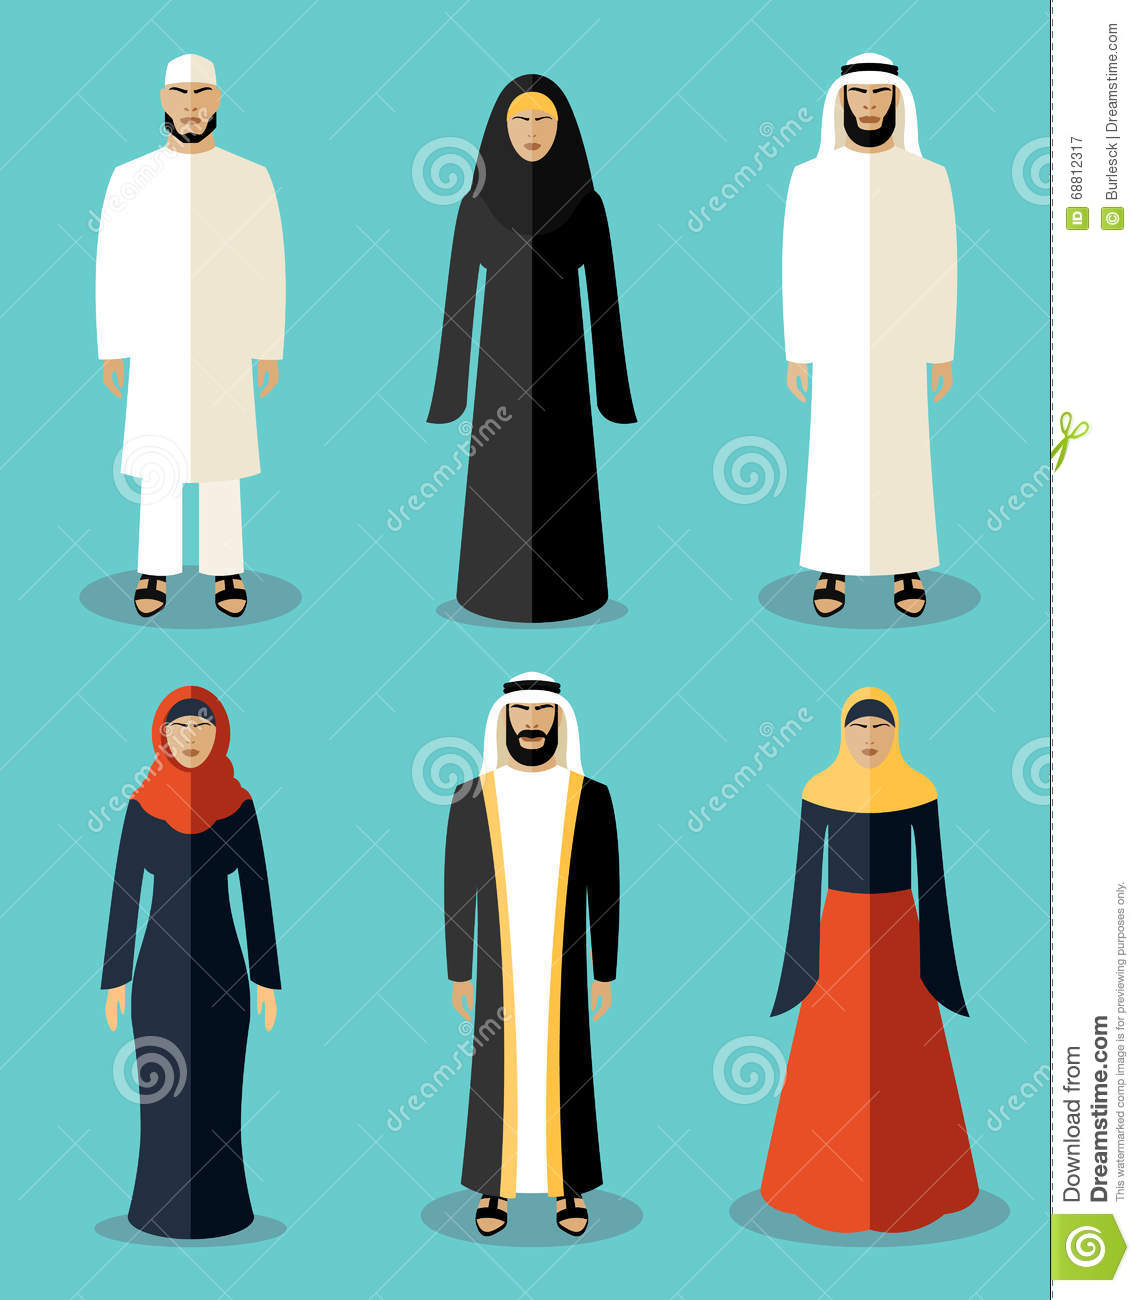 douglas flat muslim women dating site You can download free html5 css website templates, responsive bootstrap layouts from templatemo.